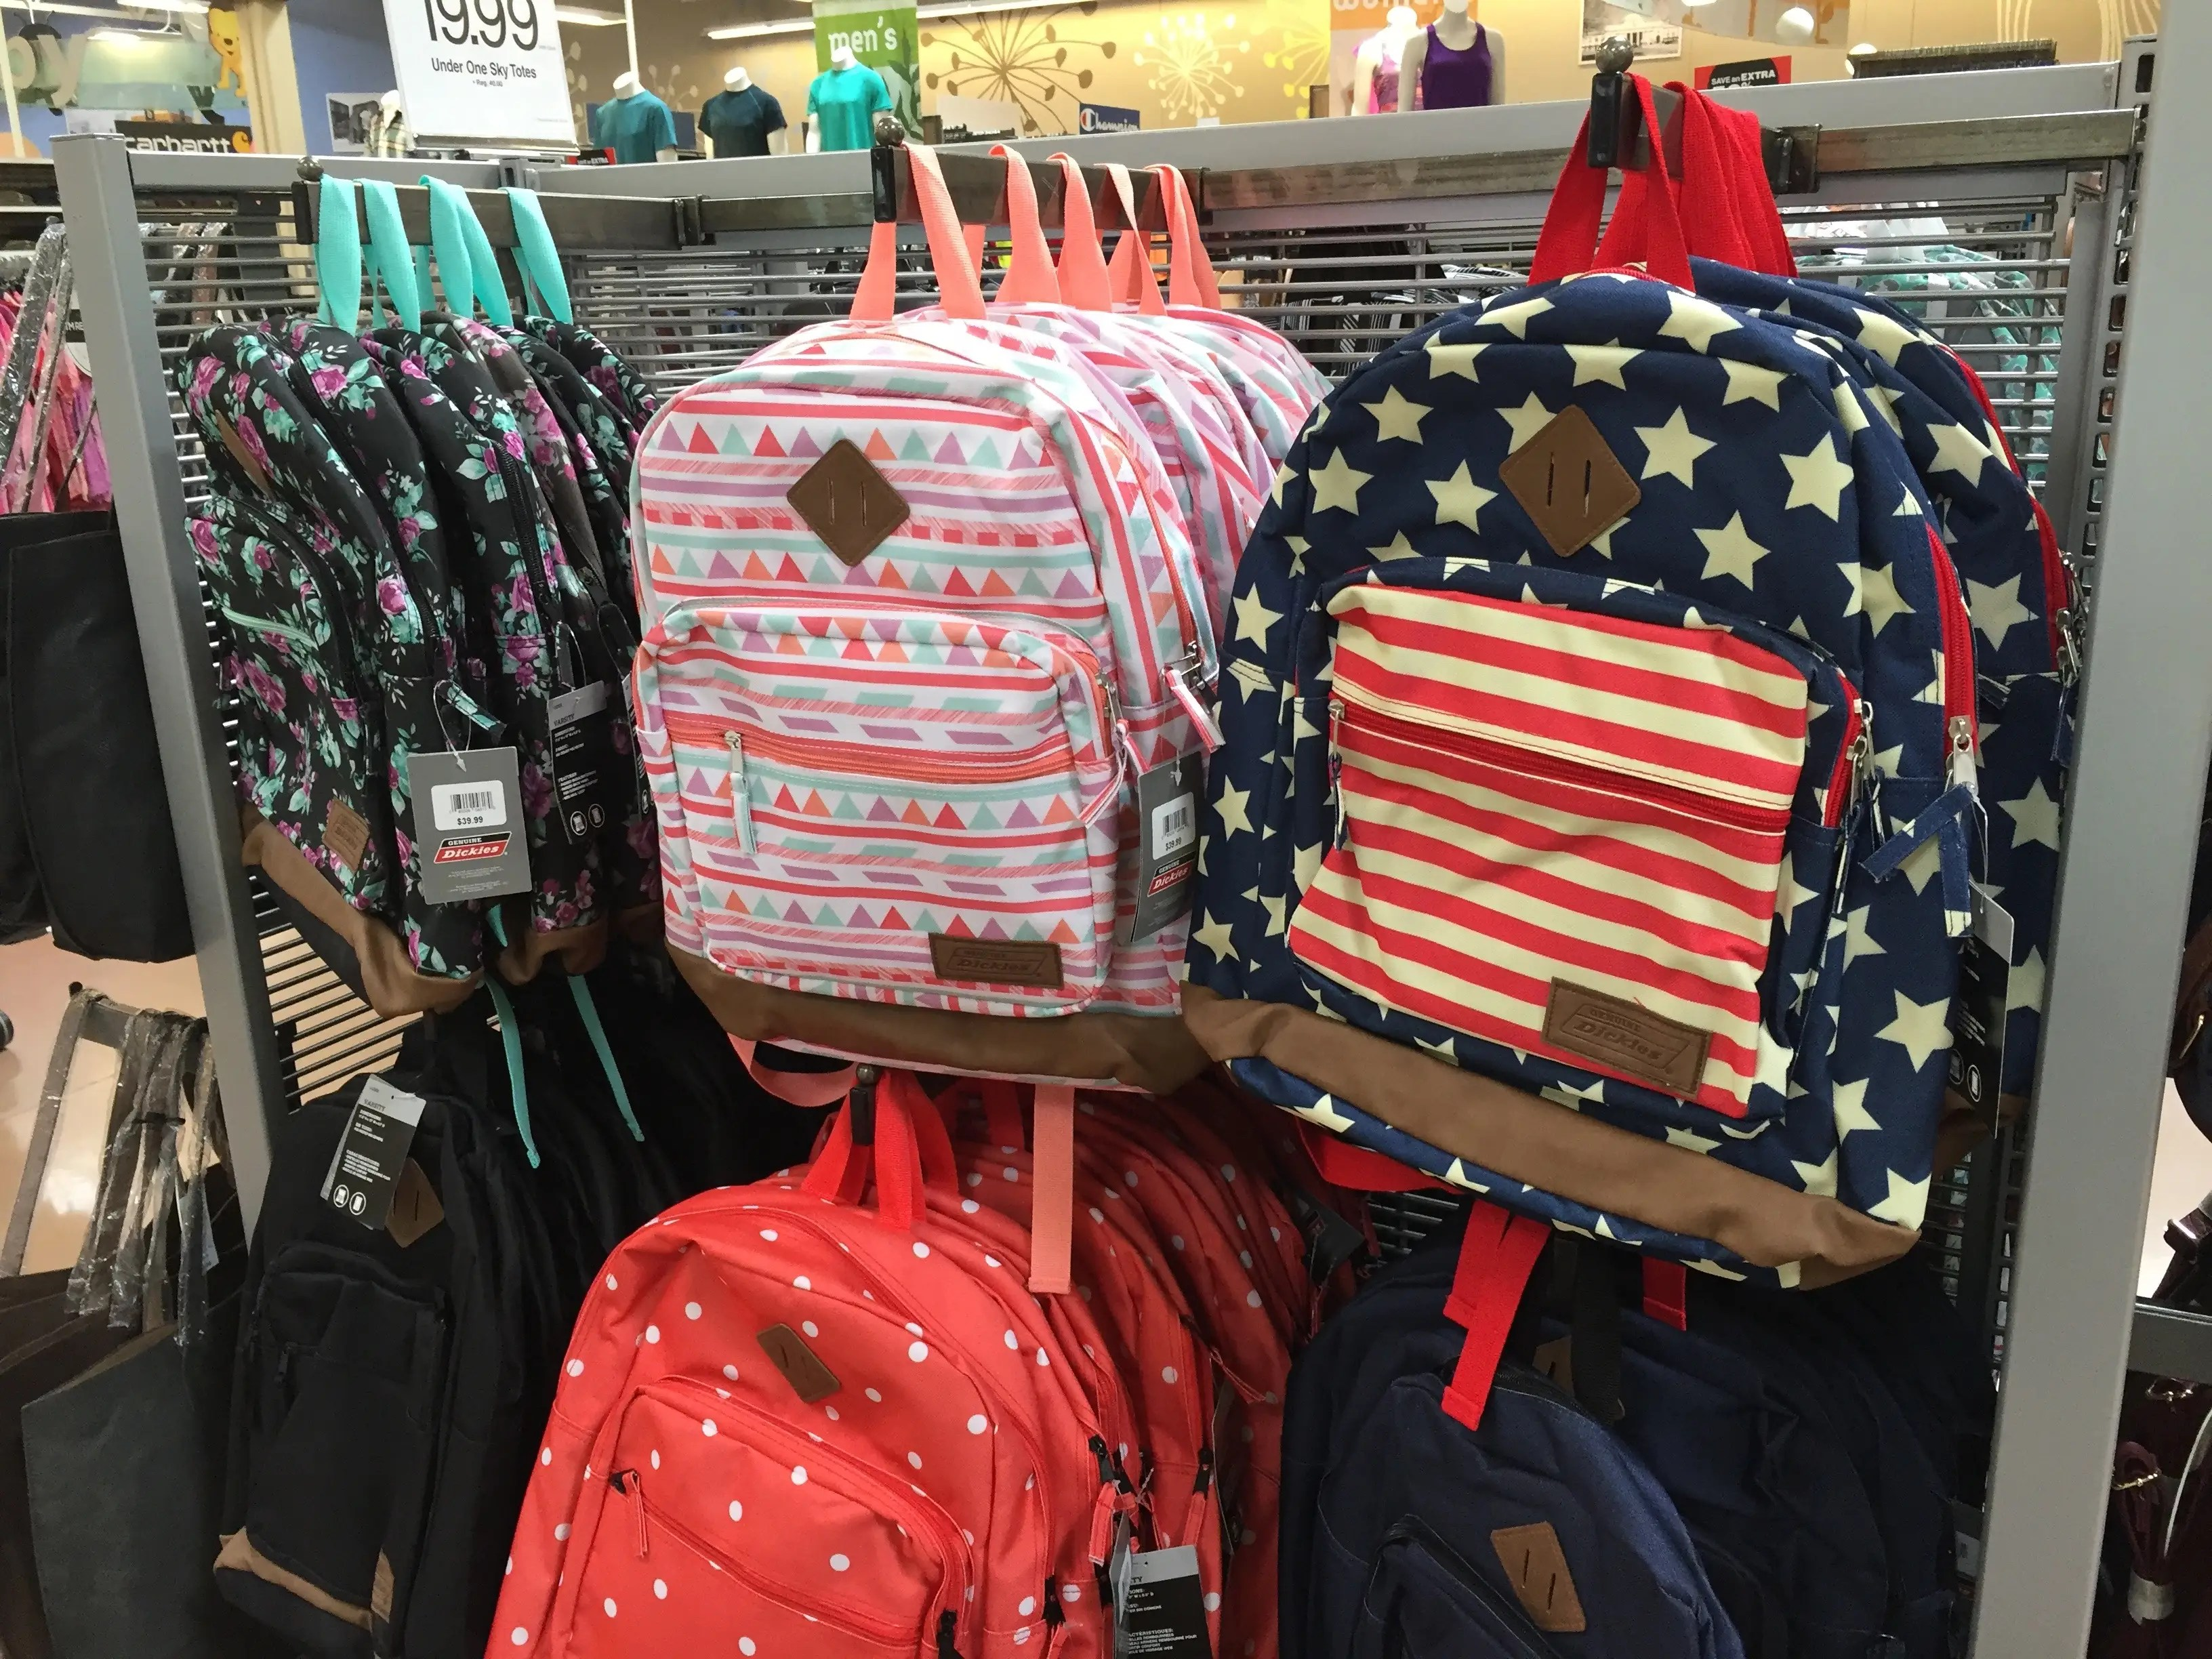 It offers back-to-school items like backpacks ...